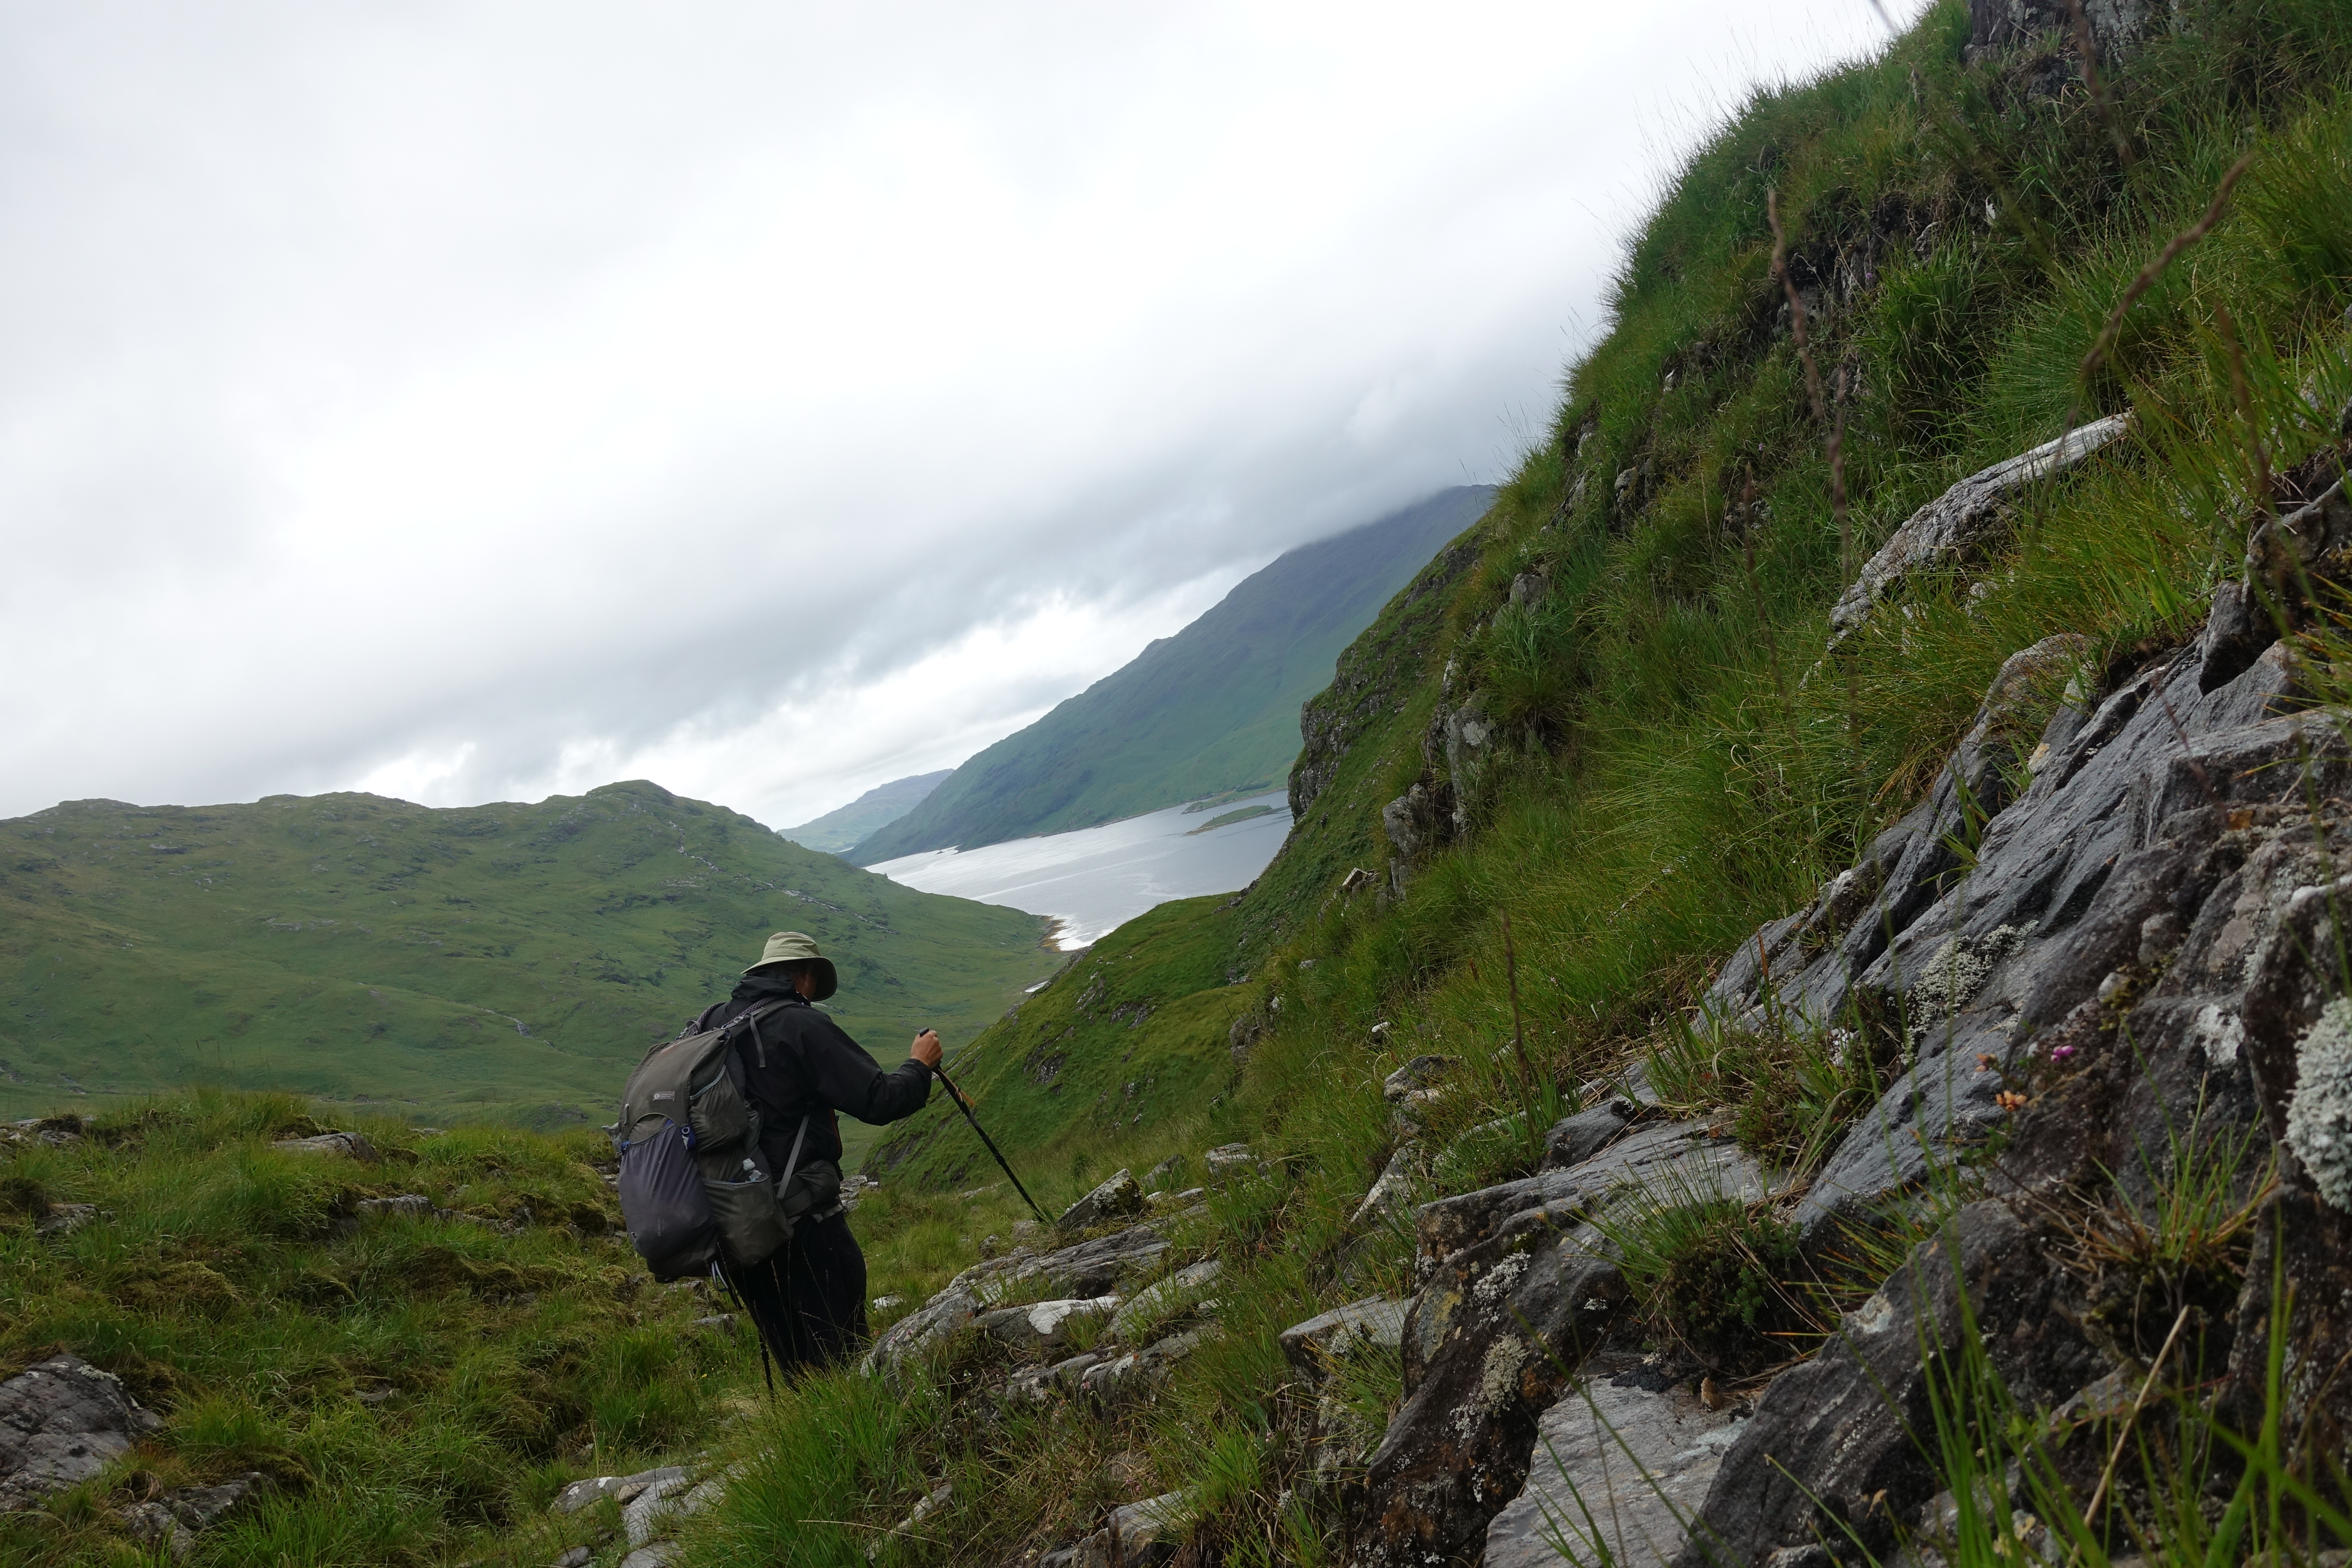 Sitting on a protruding rock, my camera is wonky but this shot takes me back to a foul days hiking in Scotland